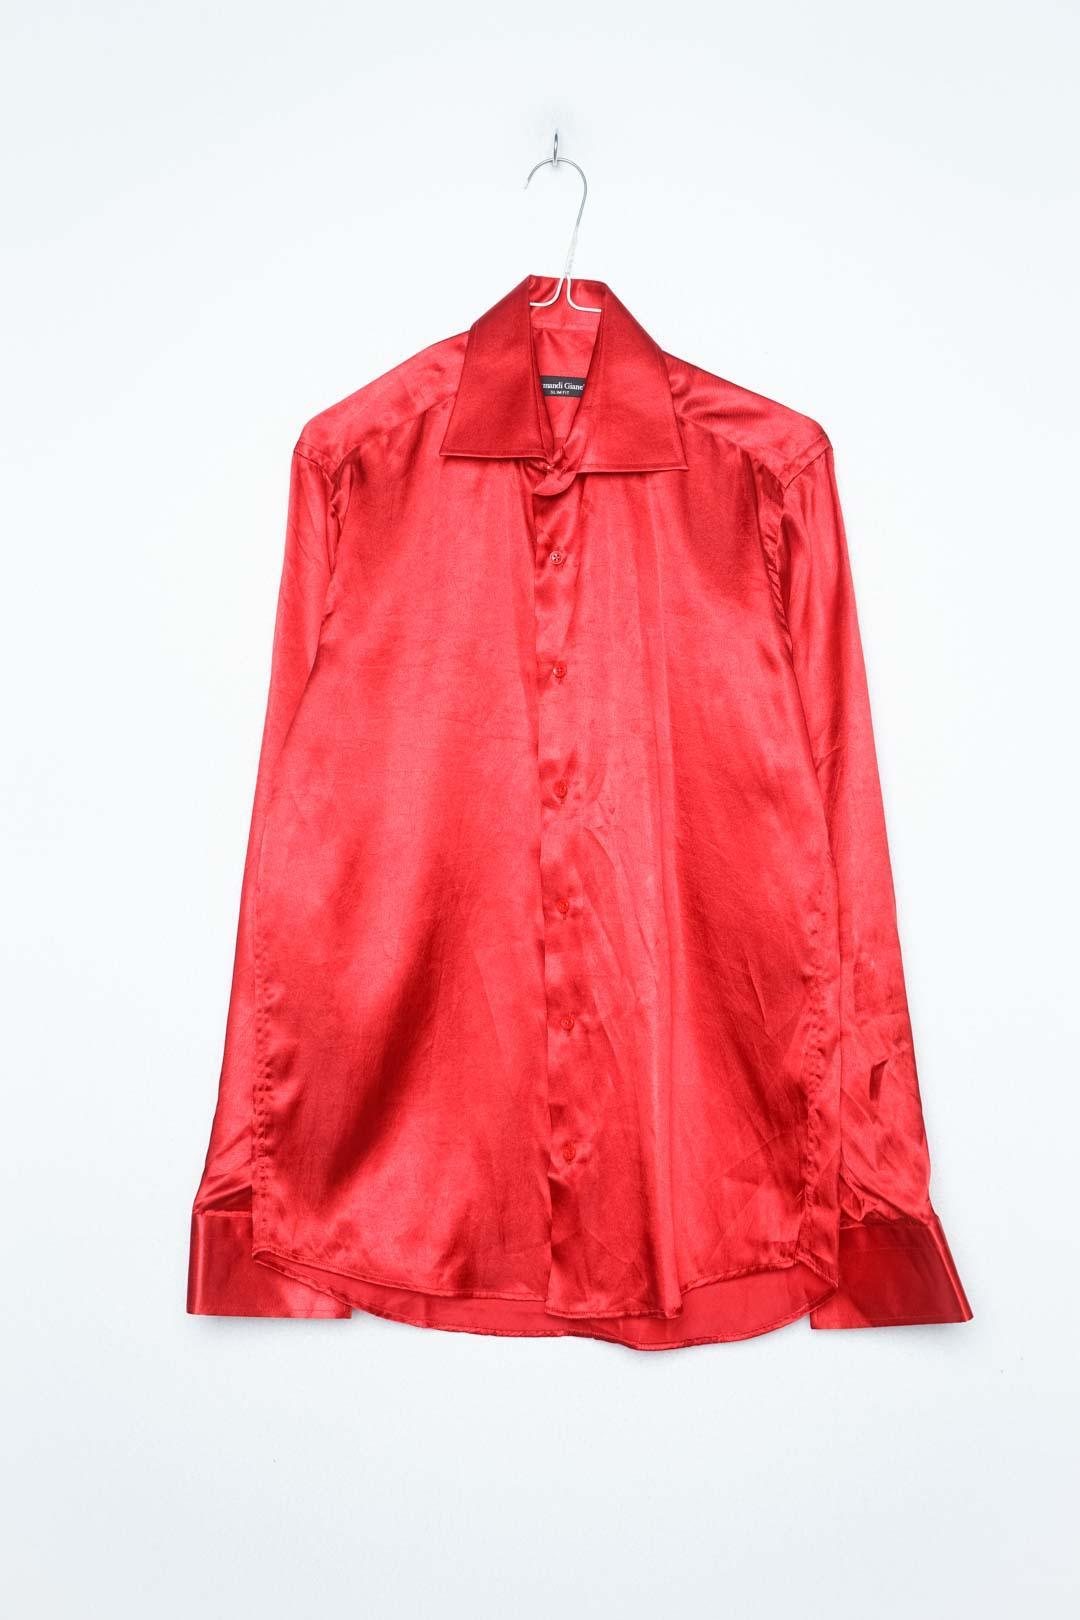 Red Lady Blouse Long Sleeve L - VinoKilo.com